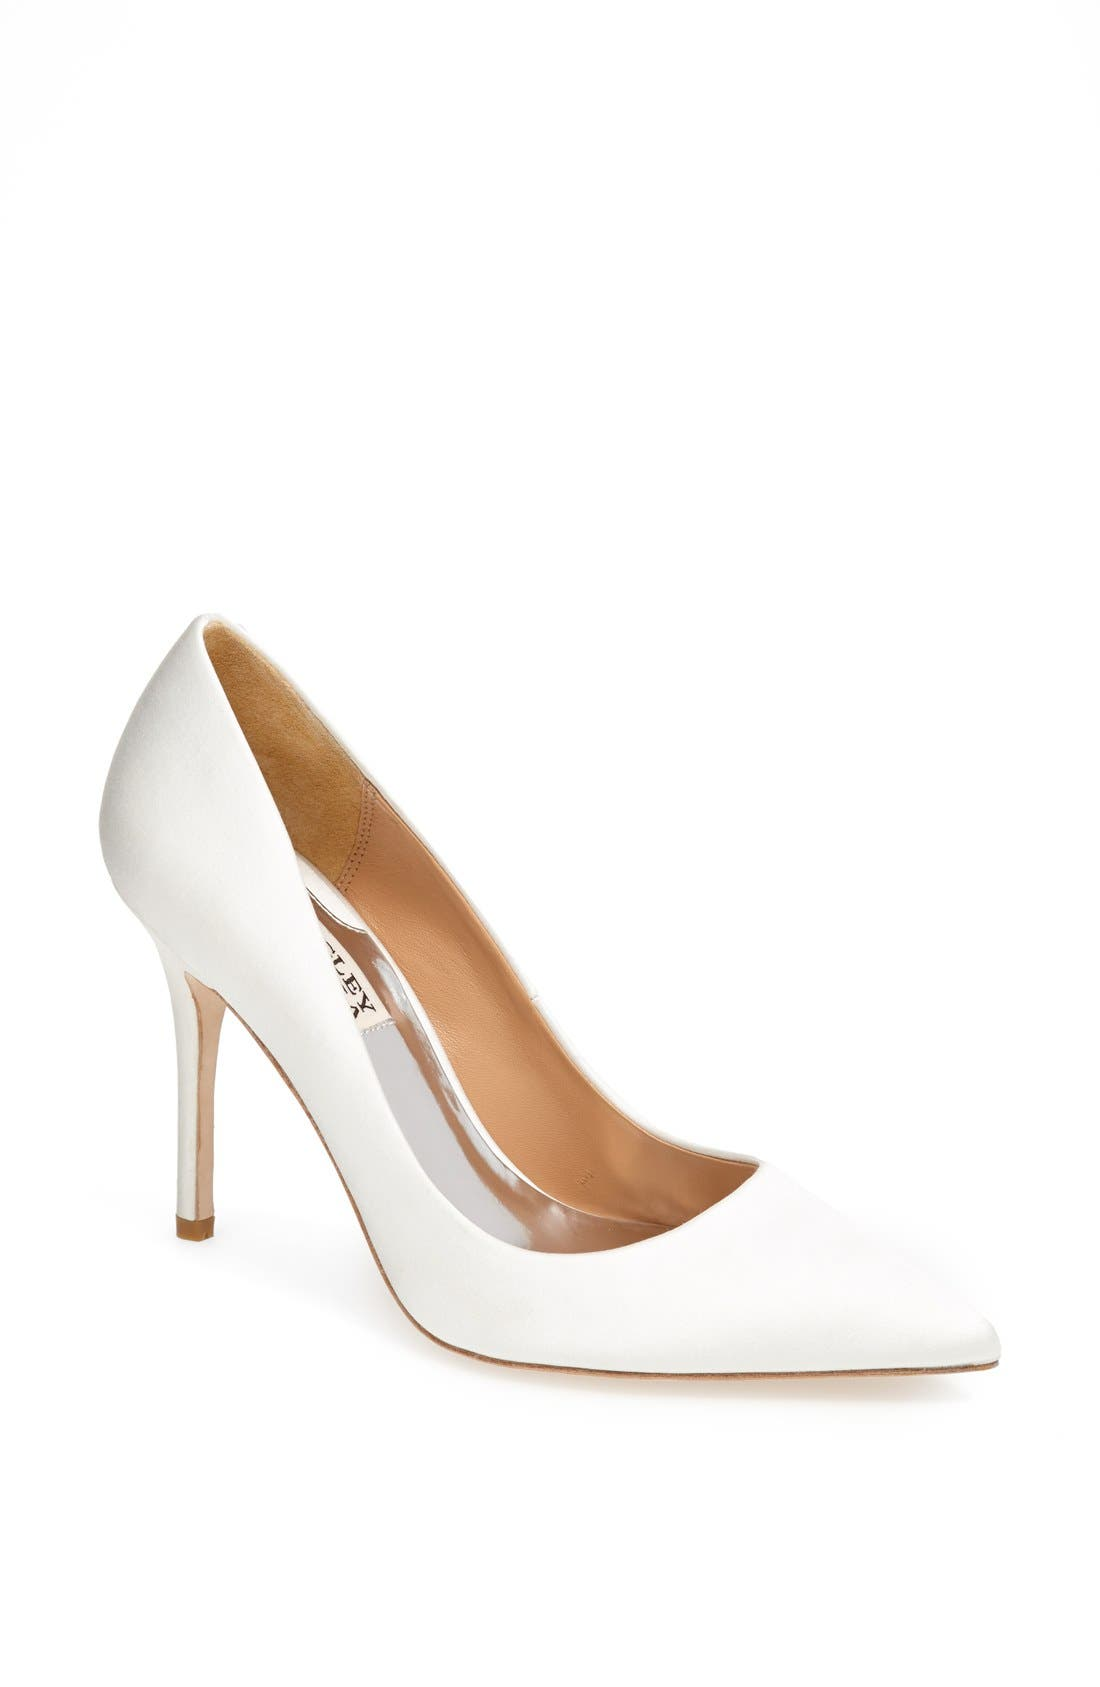 Main Image - Badgley Mischka 'Kat' Pump